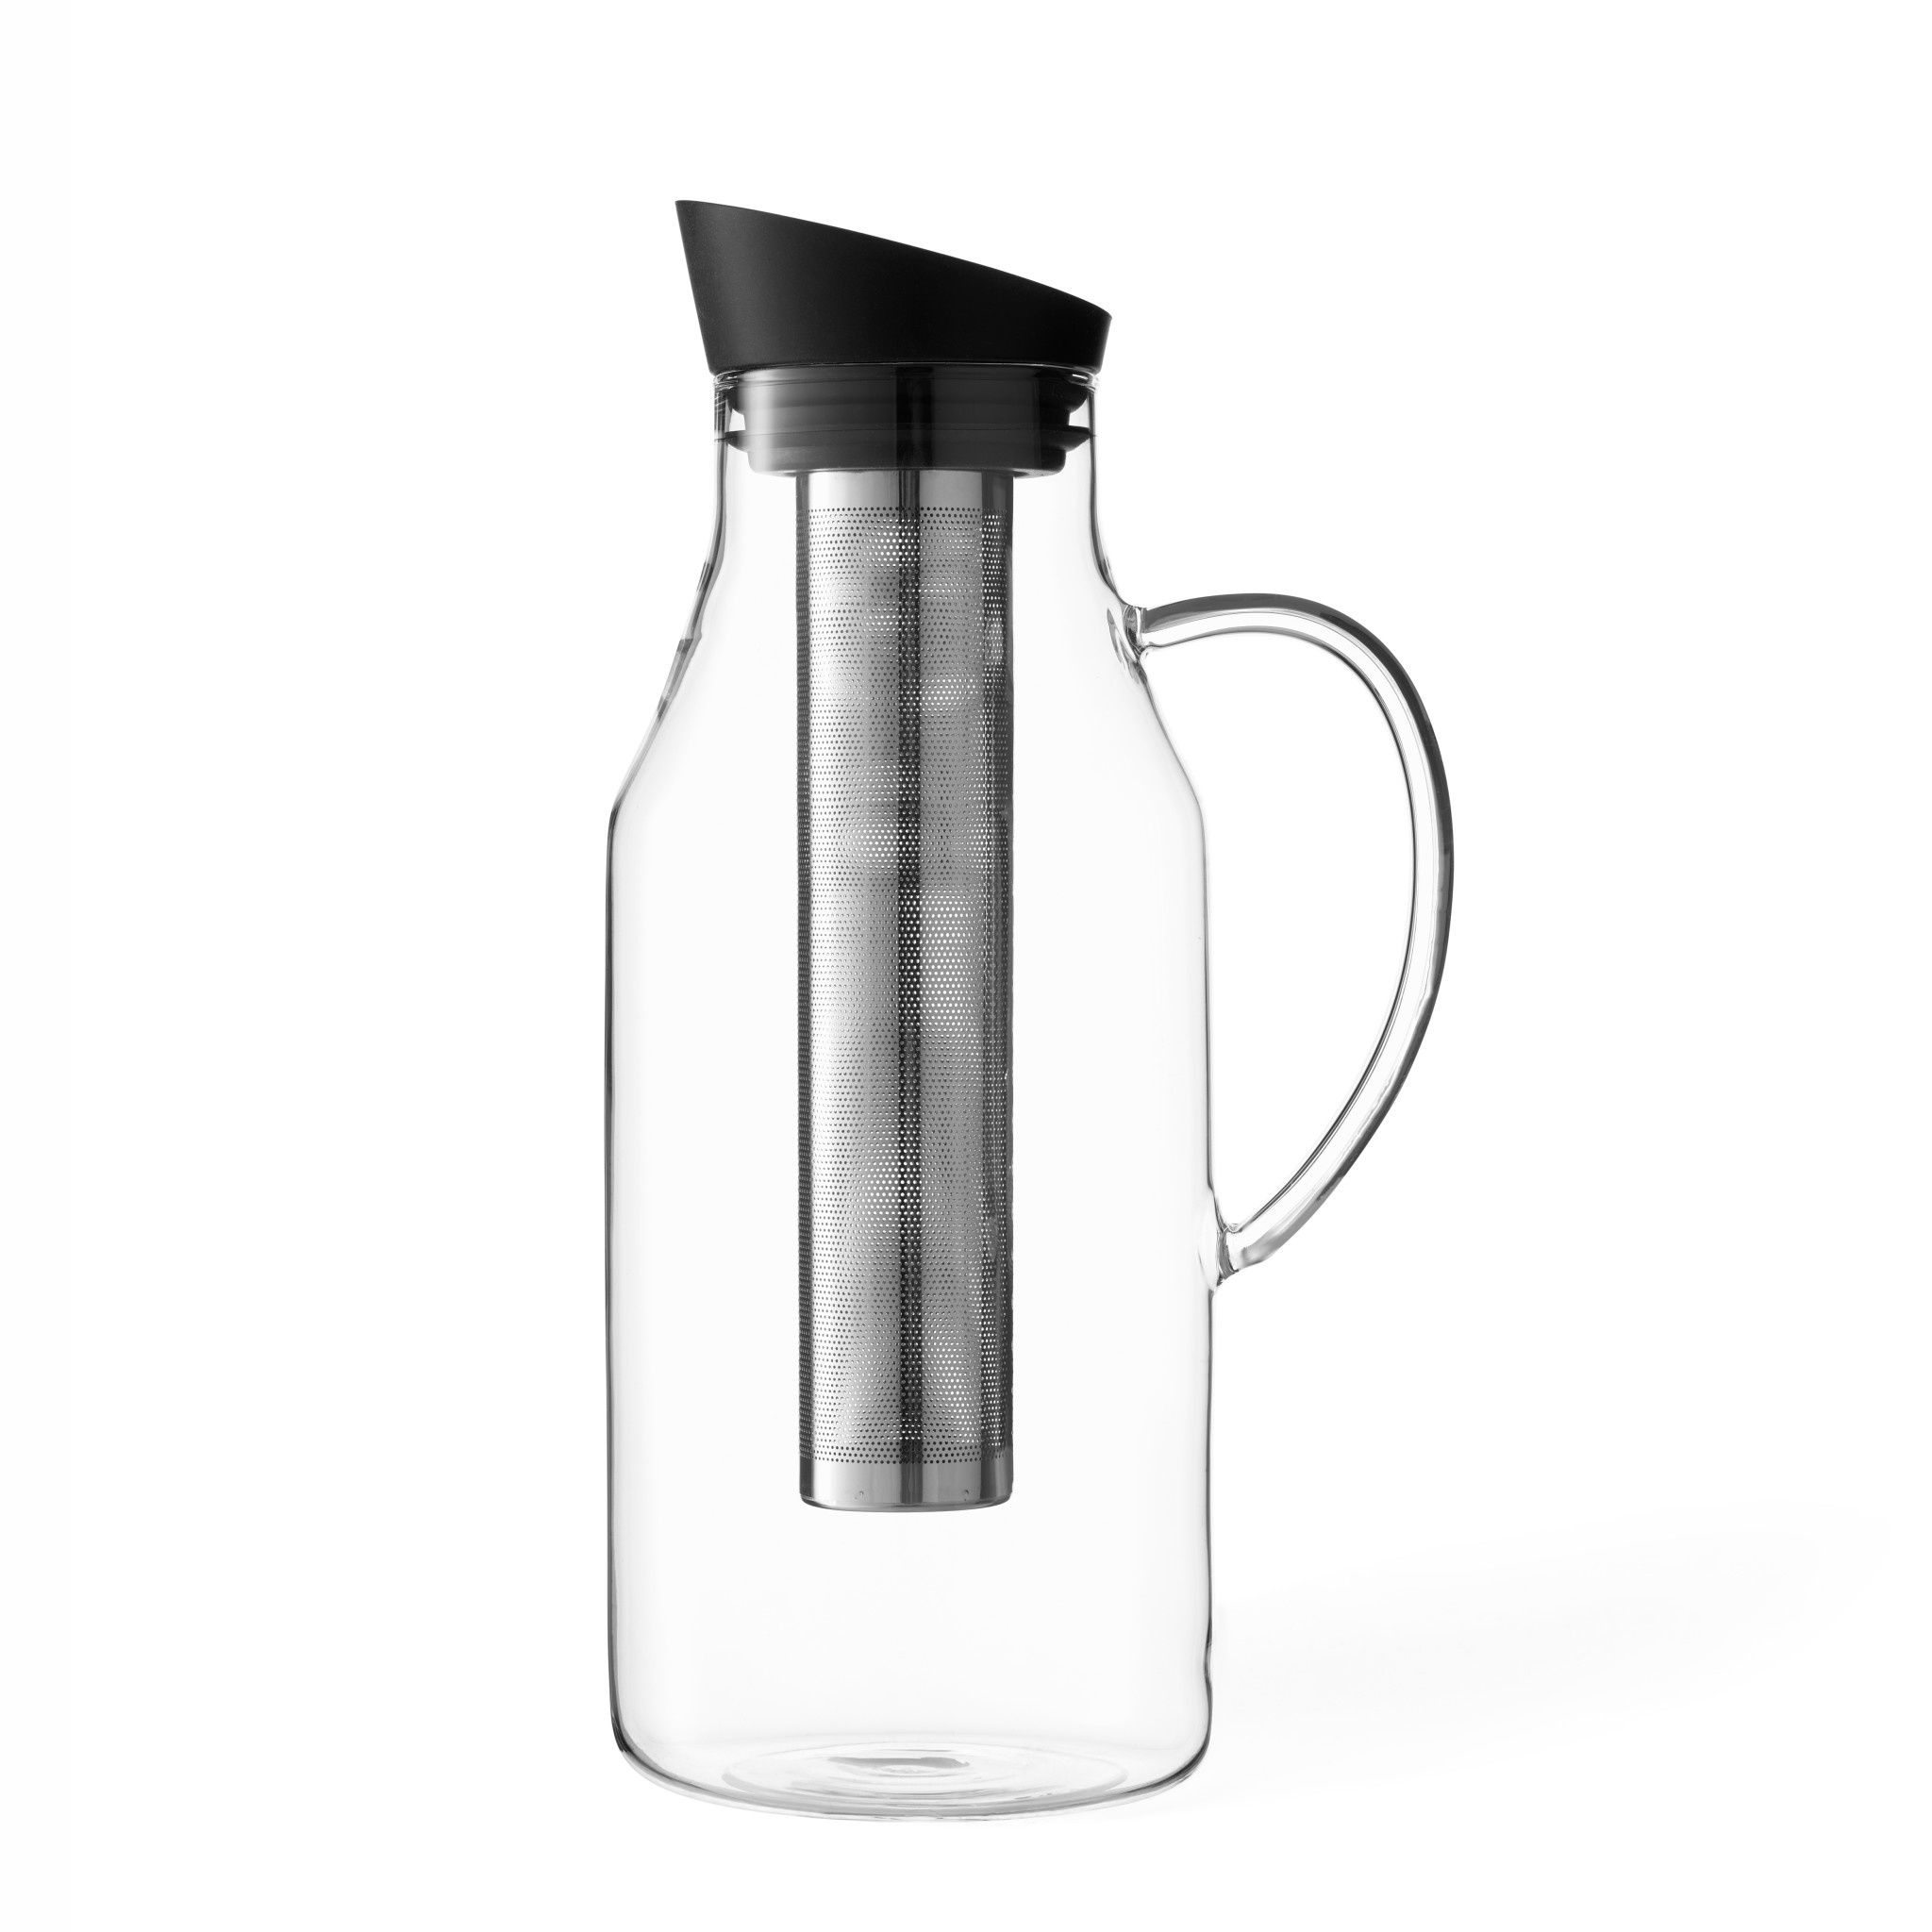 Viva™ iced tea maker